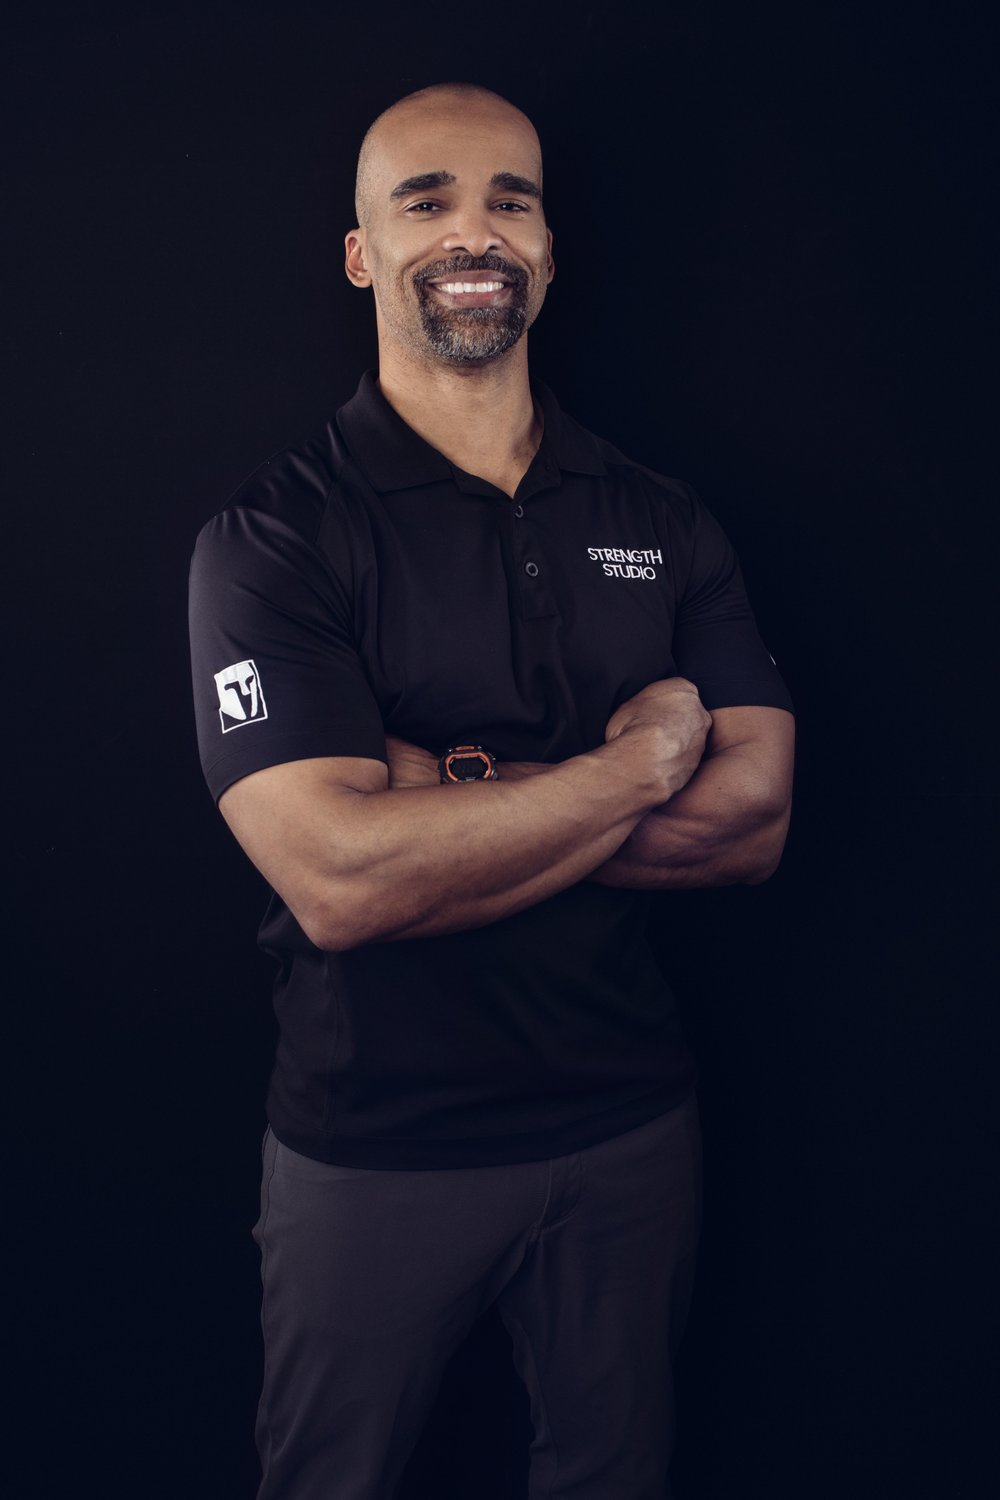 Erick Minor Owner/Personal Trainer Functional Range Conditioning, FRC certified Certified Personal Trainer, ACE Poliquin Biosignature Modulation Level 2 Certified Sports Massage Therapist